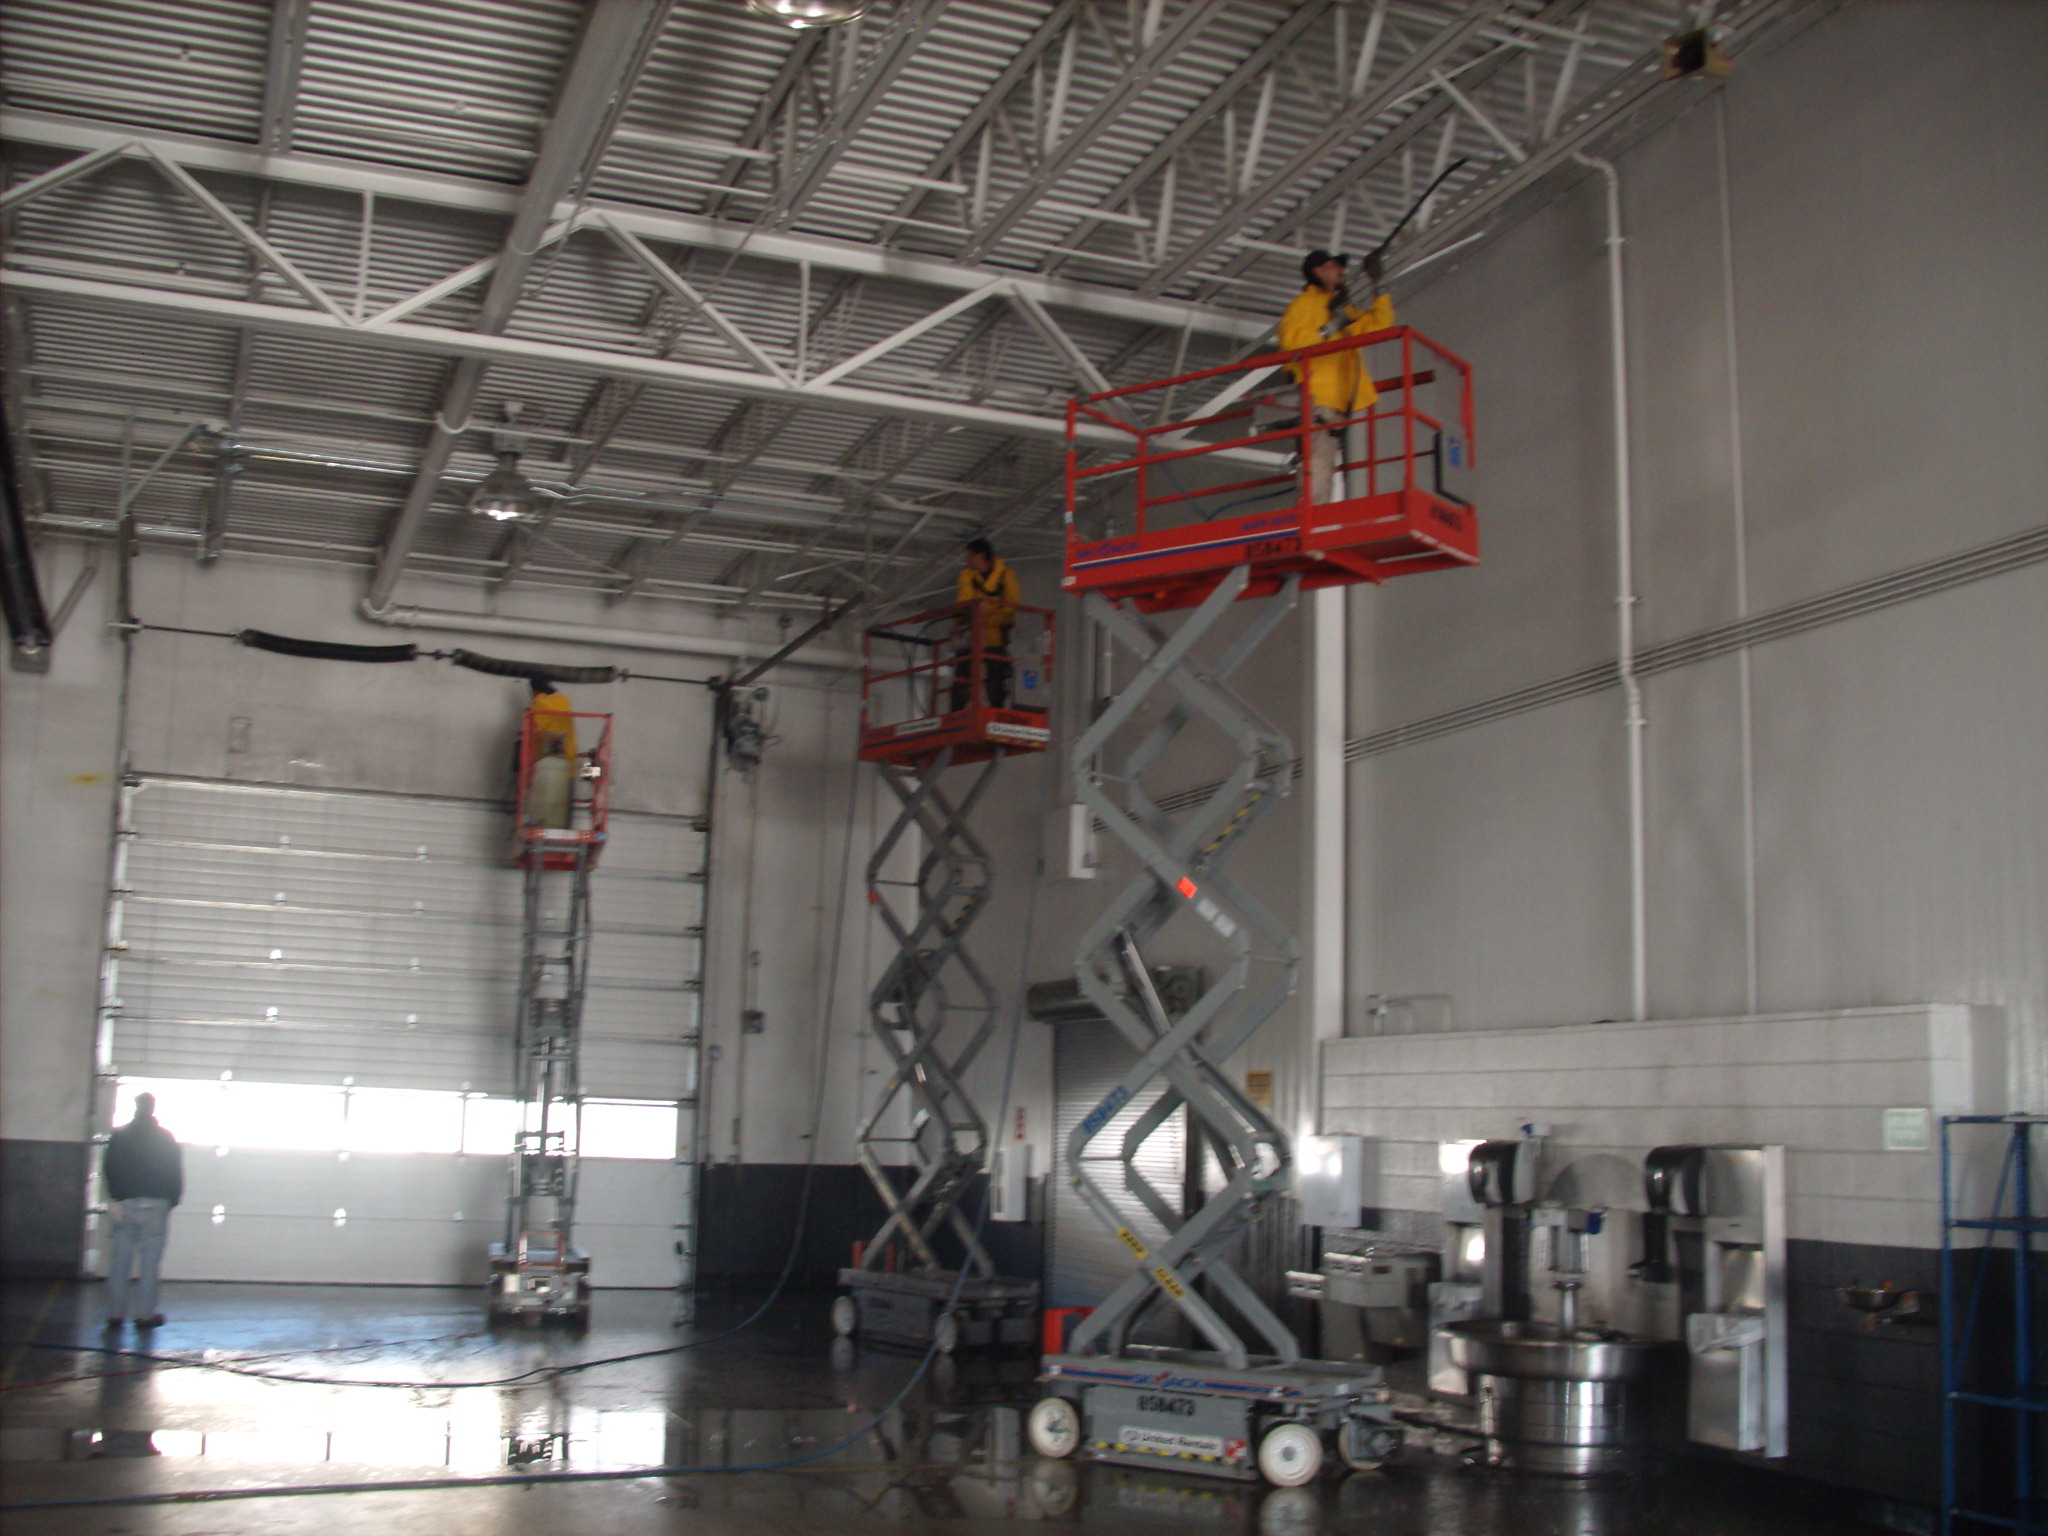 Pressure Washing The Interior Walls And Ceilings A Warehouse Or Can Be Complicated